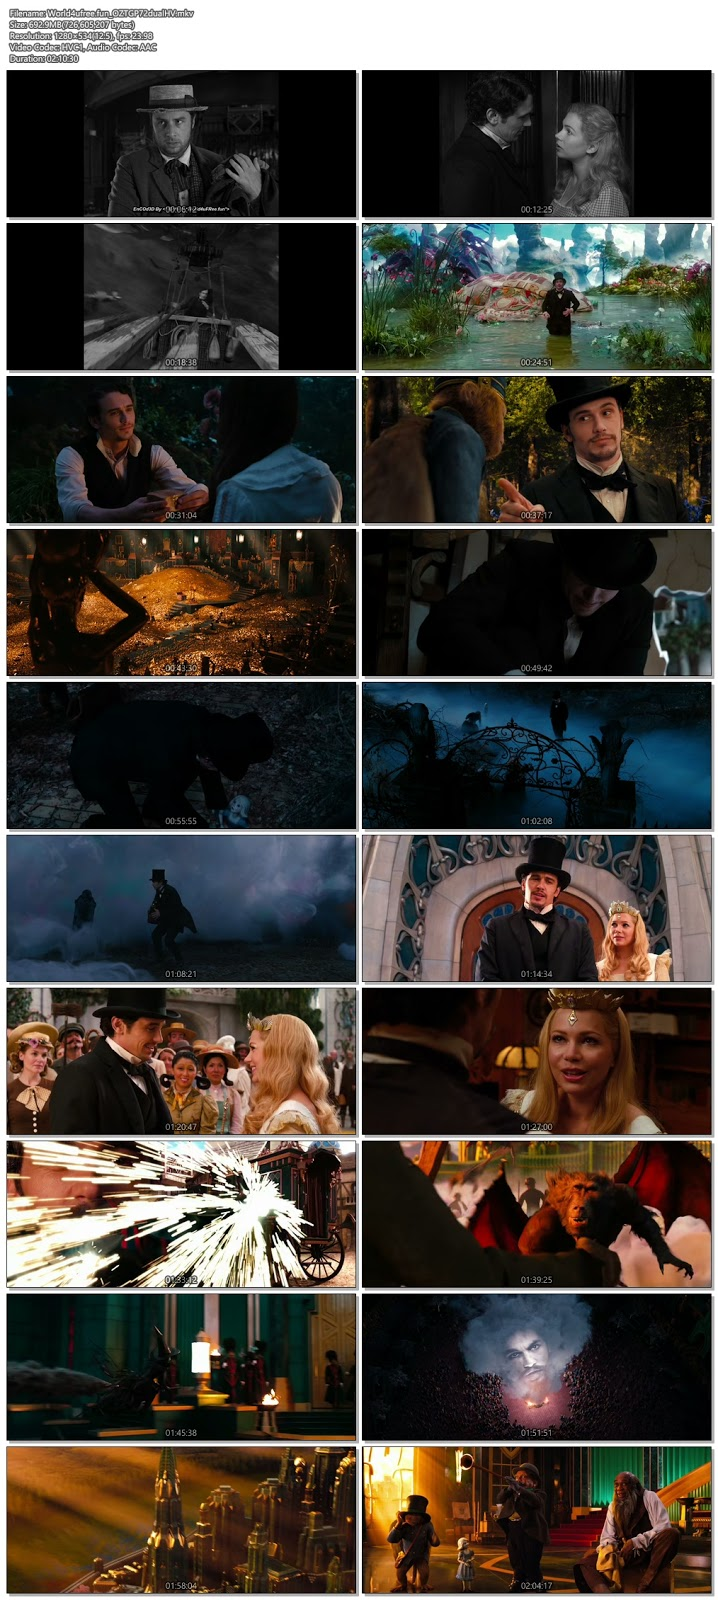 Oz the Great and Powerful 2013 Dual Audio 720p BRRip 700Mb HEVC x265world4ufree.cool, hollywood movie Arthur and the Invisibles 2006 hindi dubbed dual audio hindi english languages original audio 720p BRRip hdrip free download 700mb movies download or watch online at world4ufree.cool